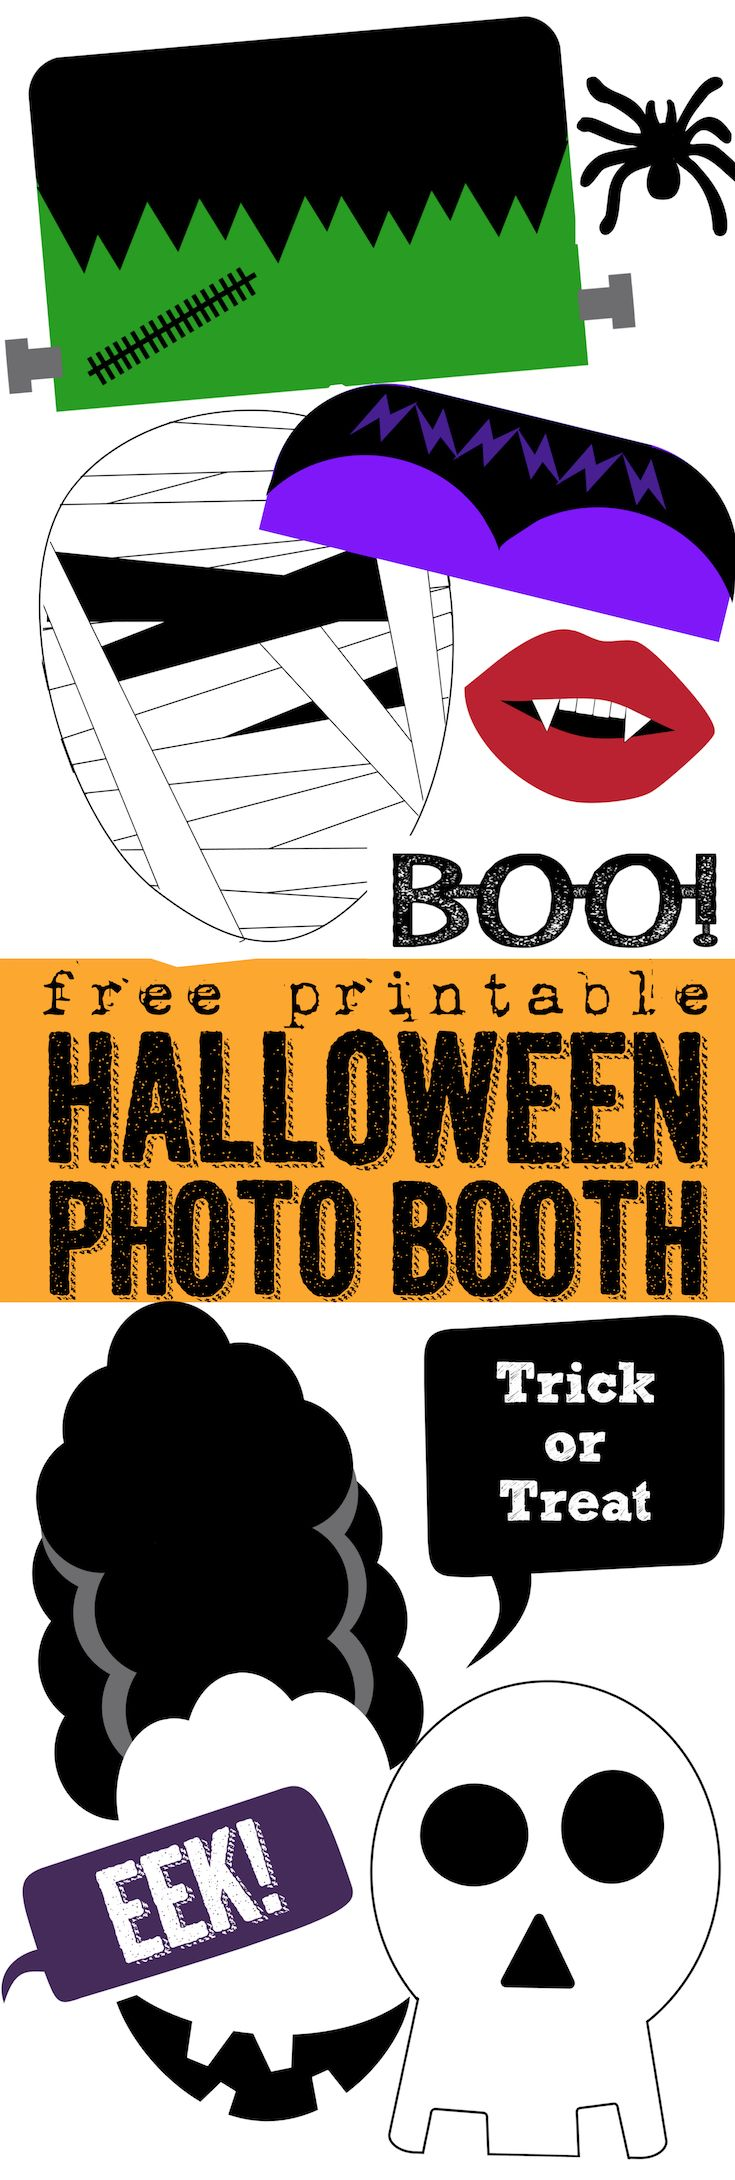 Free Printable Halloween Photo Booth. This DIY Halloween photo booth is easy and cheap. Just print and cut out. Includes mummy, Frankenstein, witch hat, boo glasses, Dracula teeth, spider, skeleton, trick or treat sign, and more!